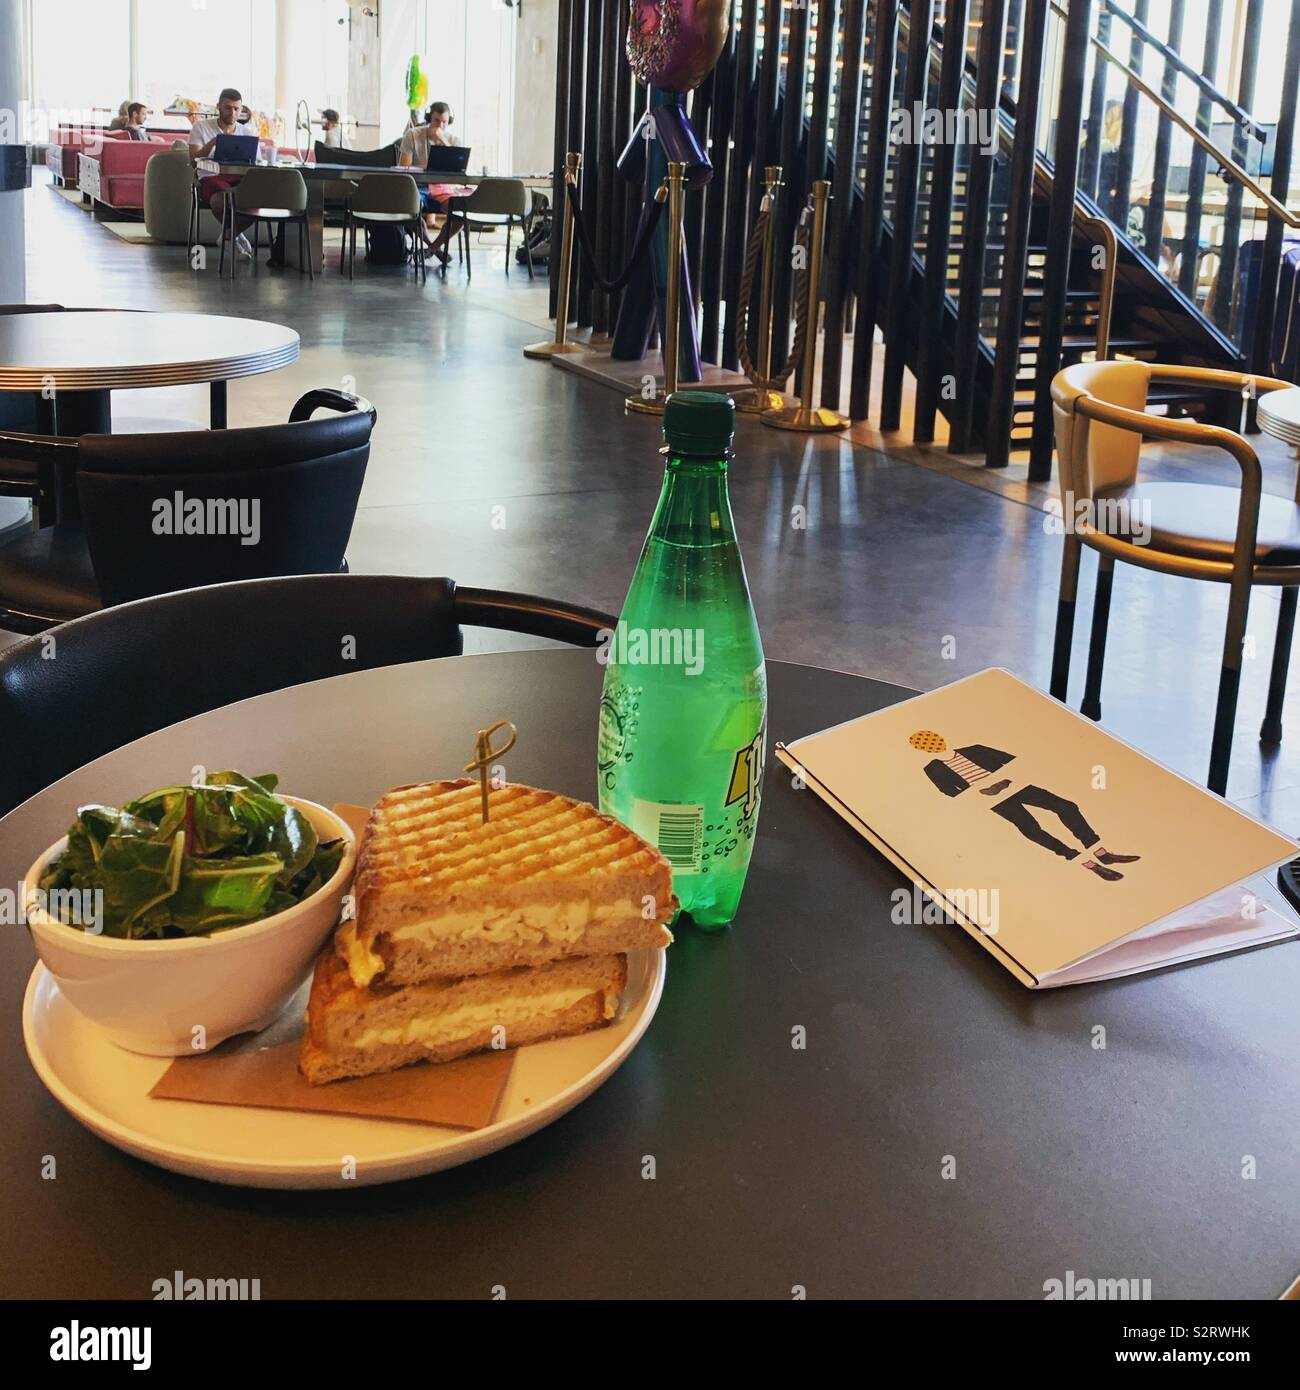 Lunch at the Hotel Indigo Lower East Side, New York City - Stock Image